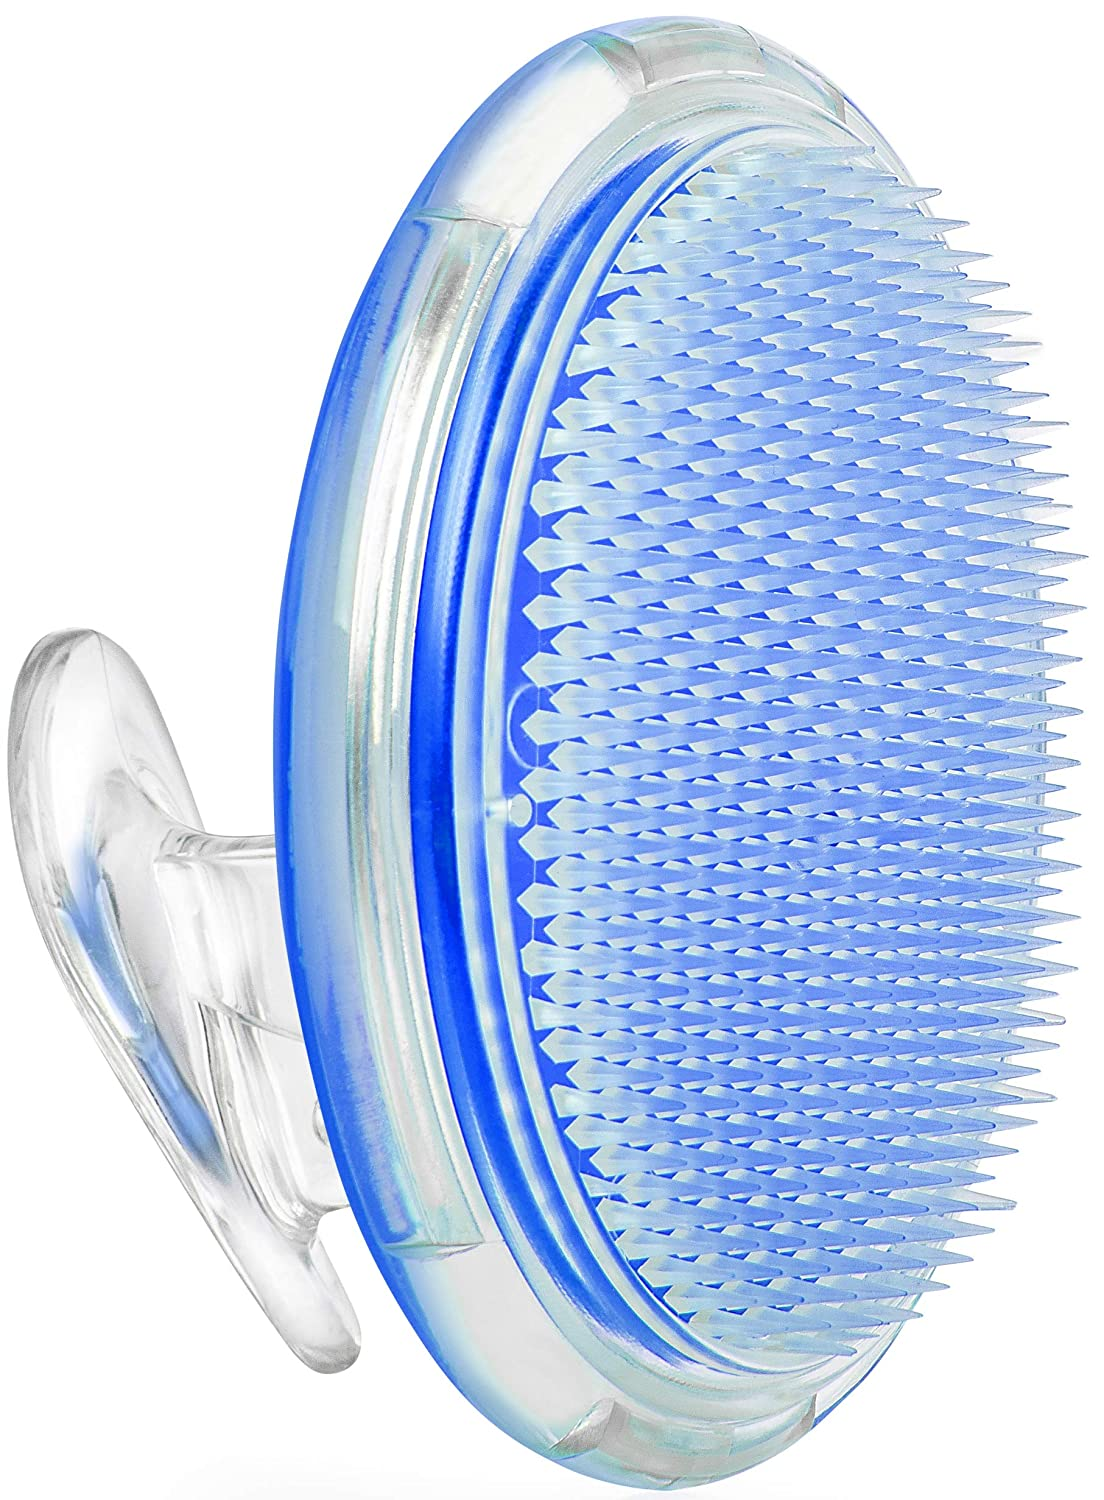 Amazon.com : Exfoliating Brush to Treat and Prevent Razor Bumps and Ingrown  Hairs - Eliminate Shaving Irritation for Face, Armpit, Legs, Neck, Bikini  Line - Silky Smooth Skin Solution for Men and